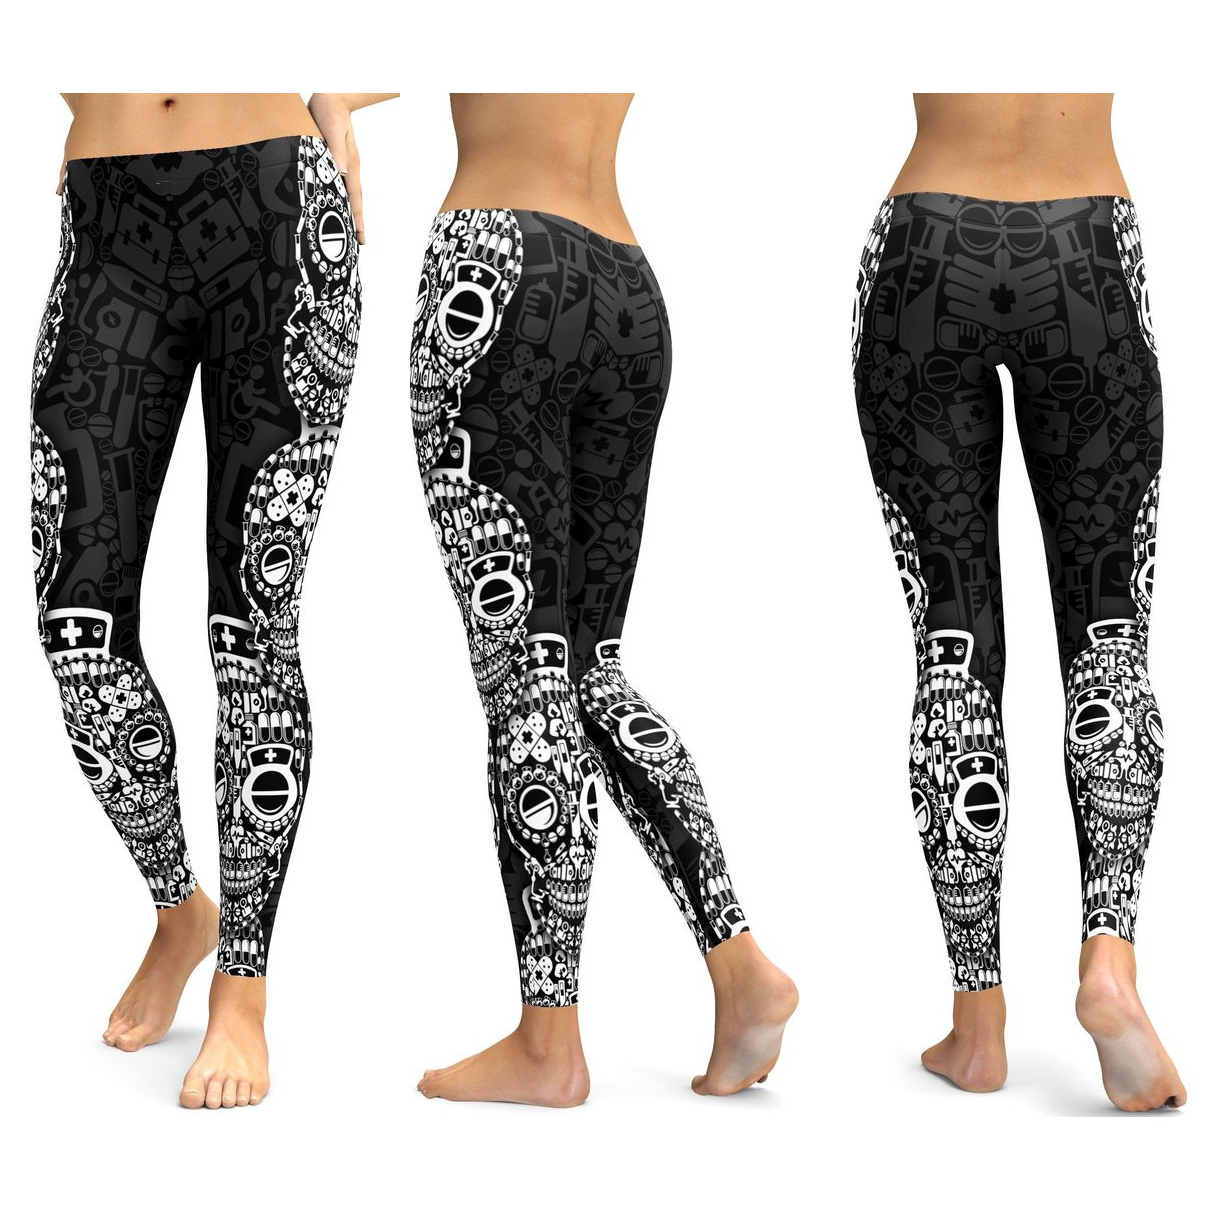 Skull Leggings Yoga Pants Women Sports Pants Fitness Running Sexy Push Up Gym Wear Elastic Slim Workout Leggings 37